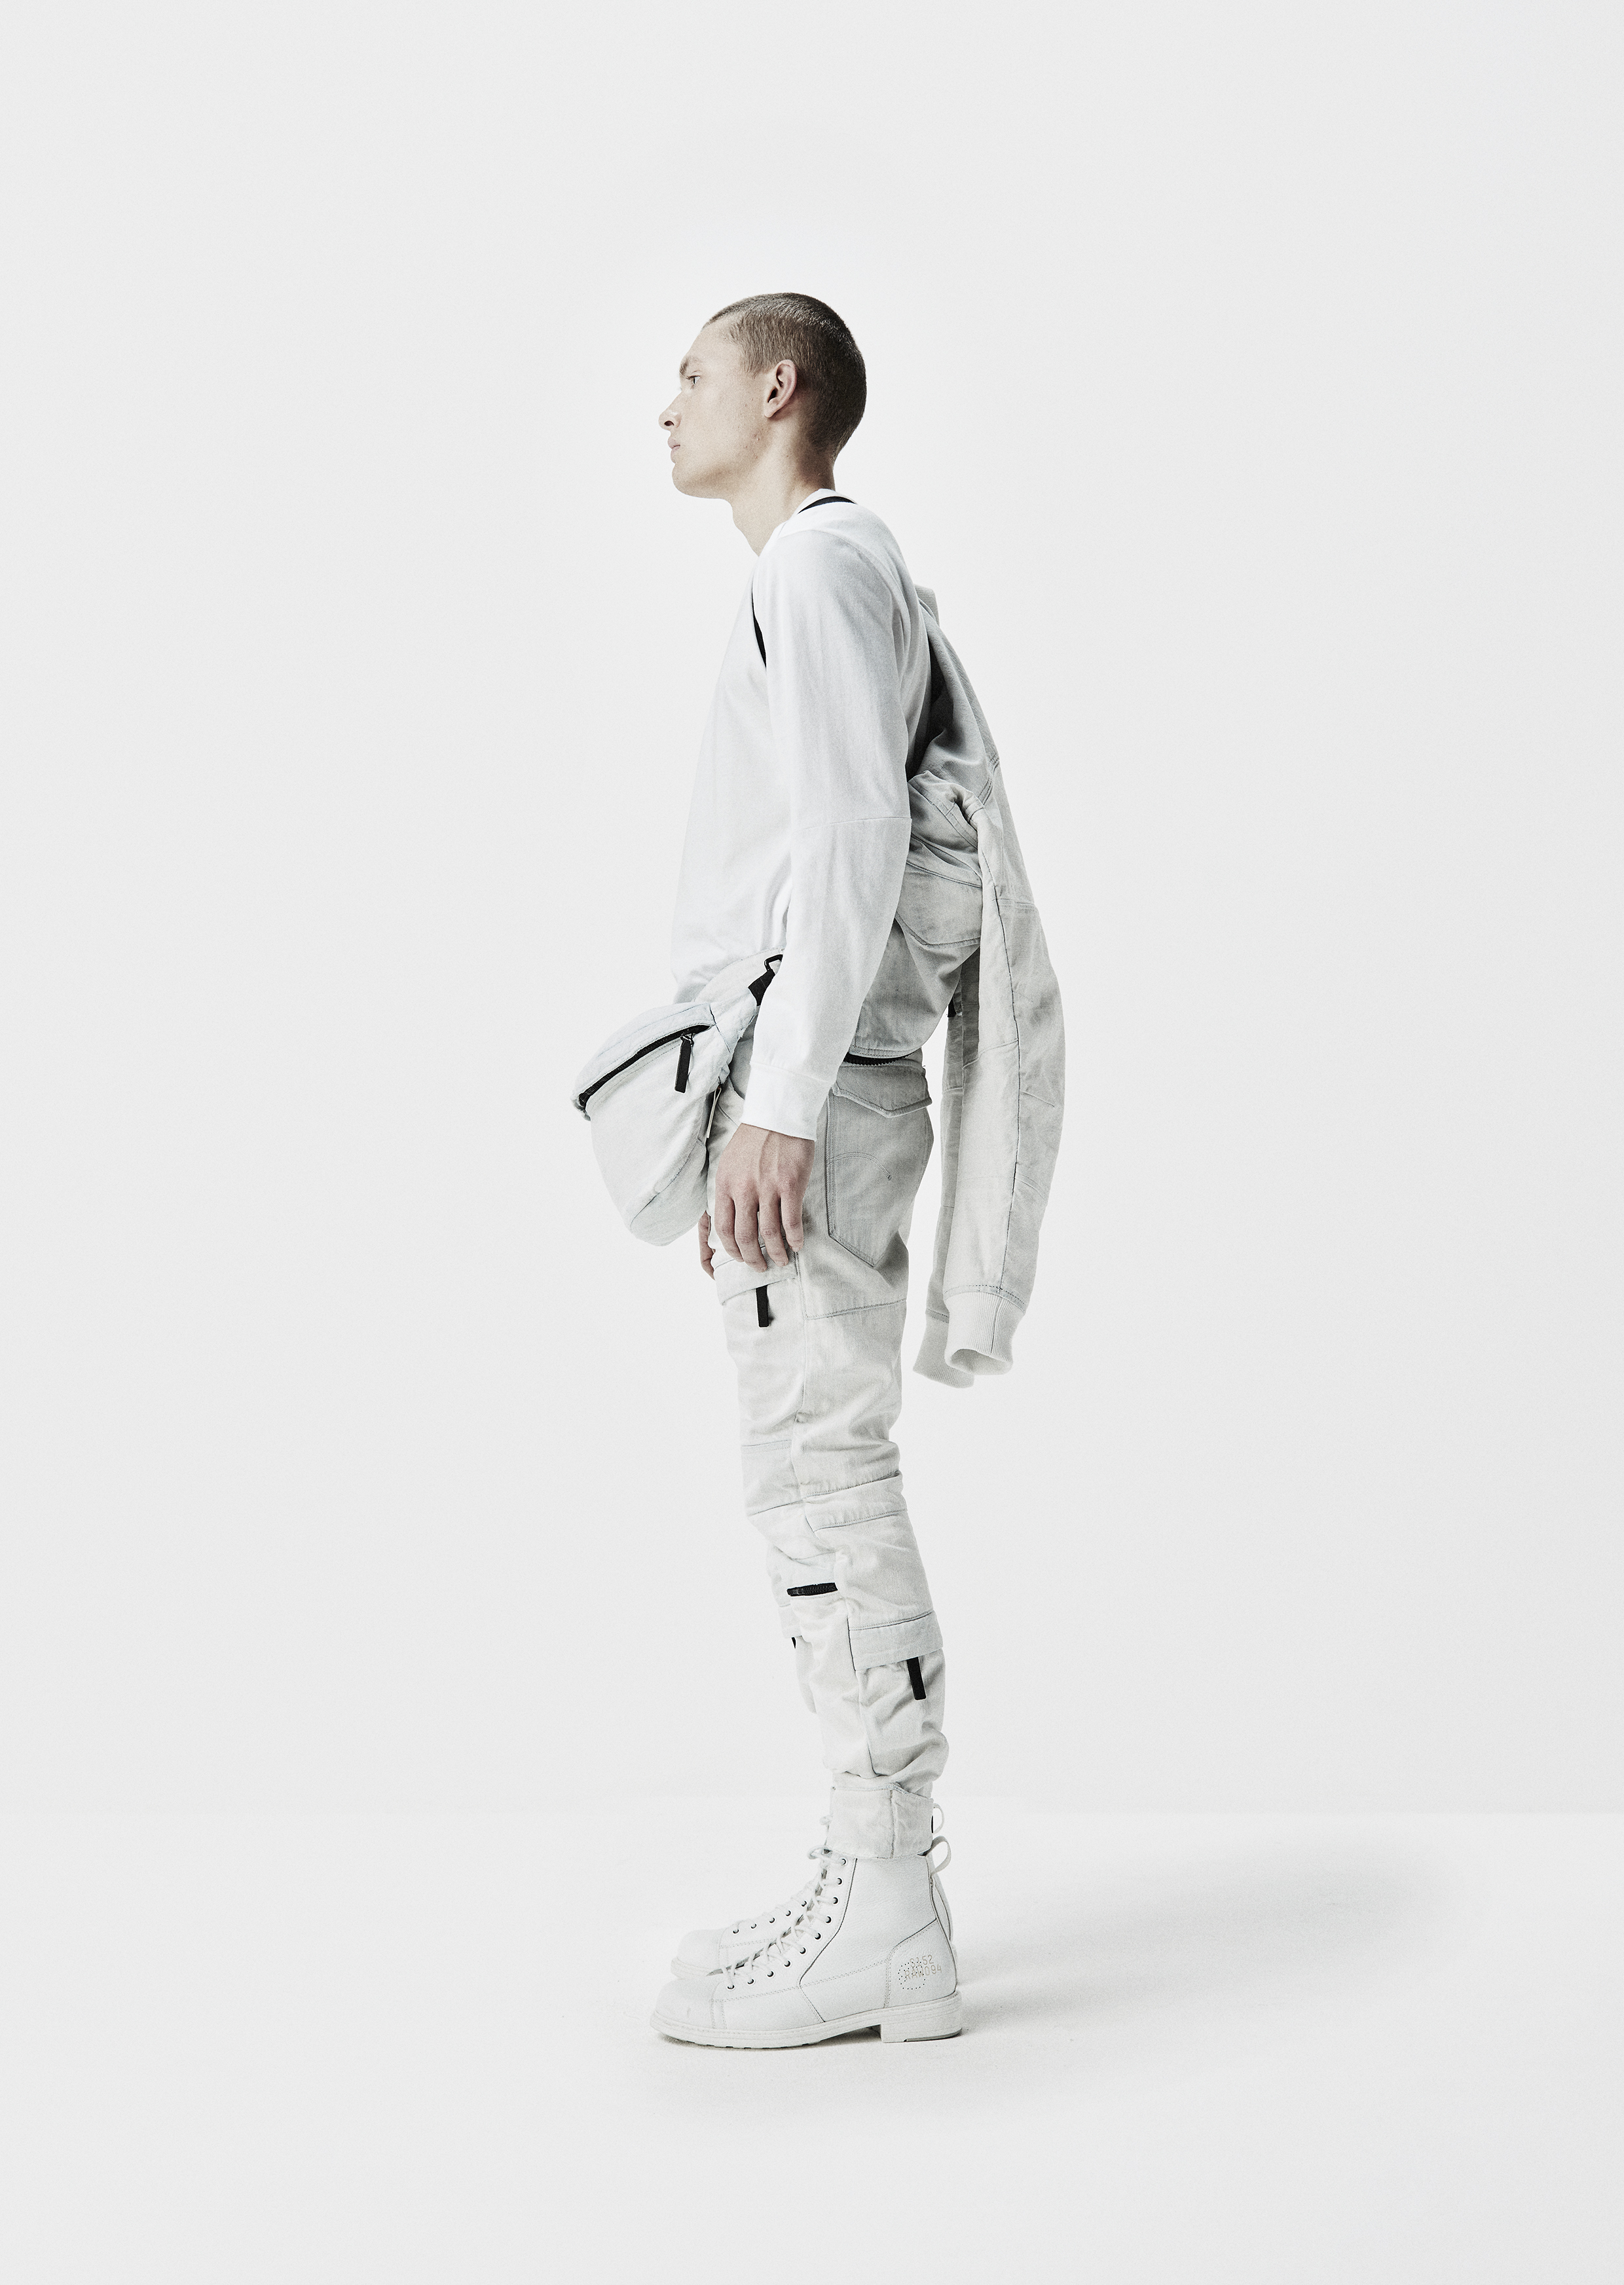 G-STAR RAW RESEARCH BY AITOR THROUP